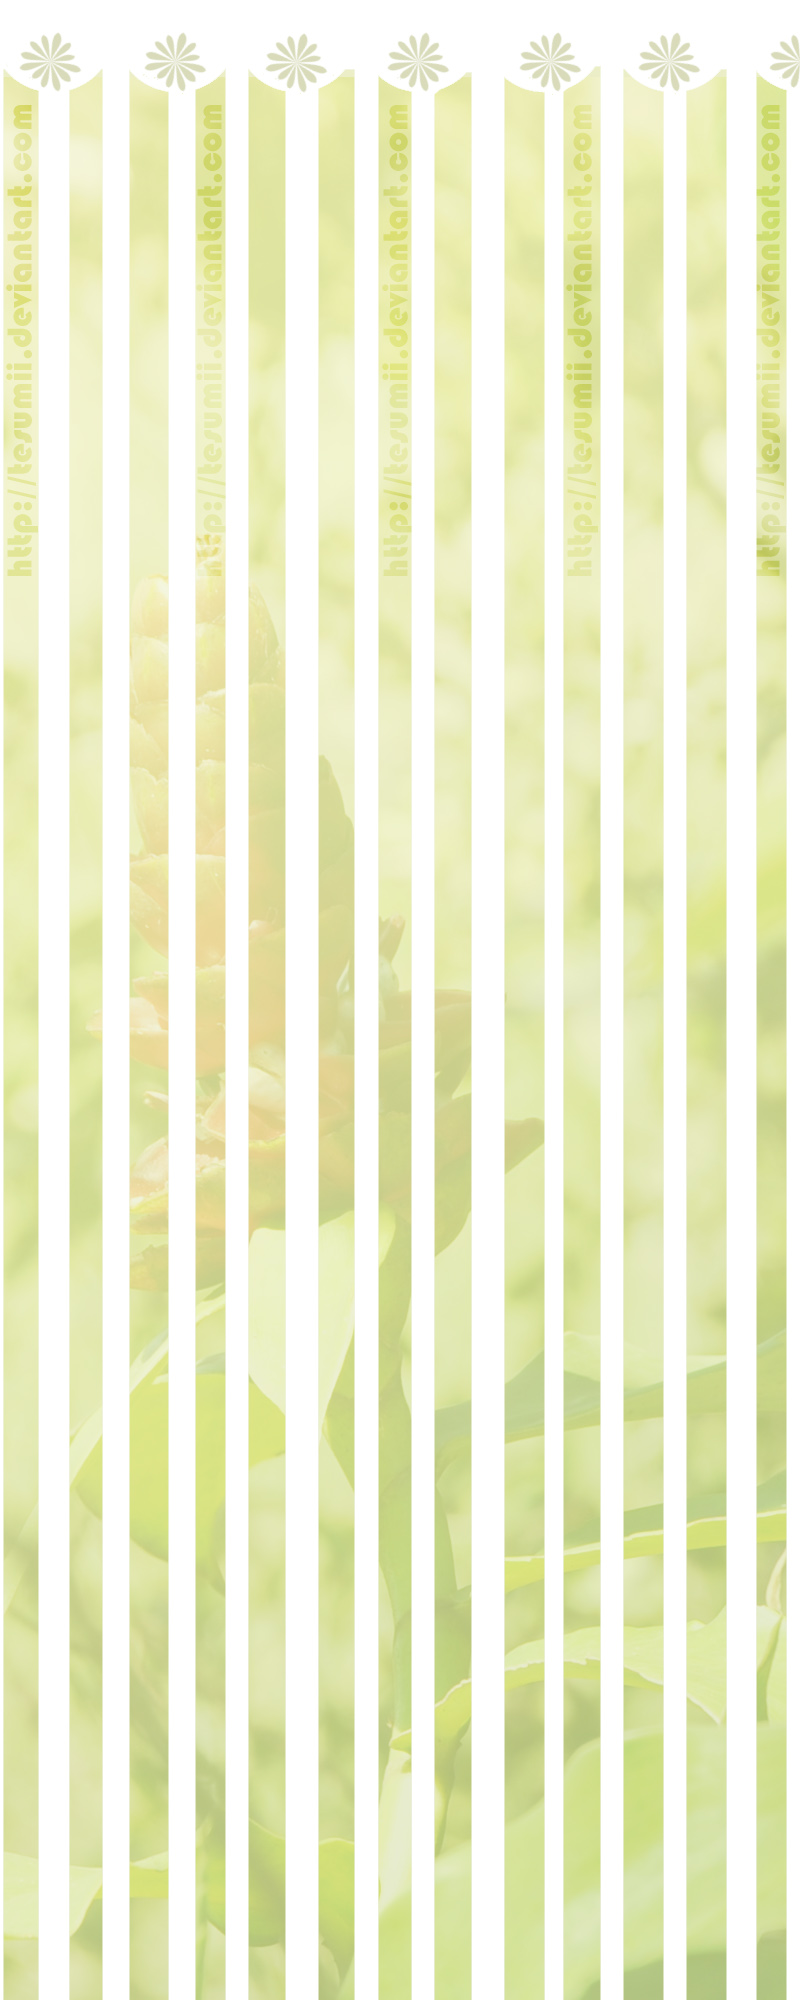 Background FLOWER Green by tesumii